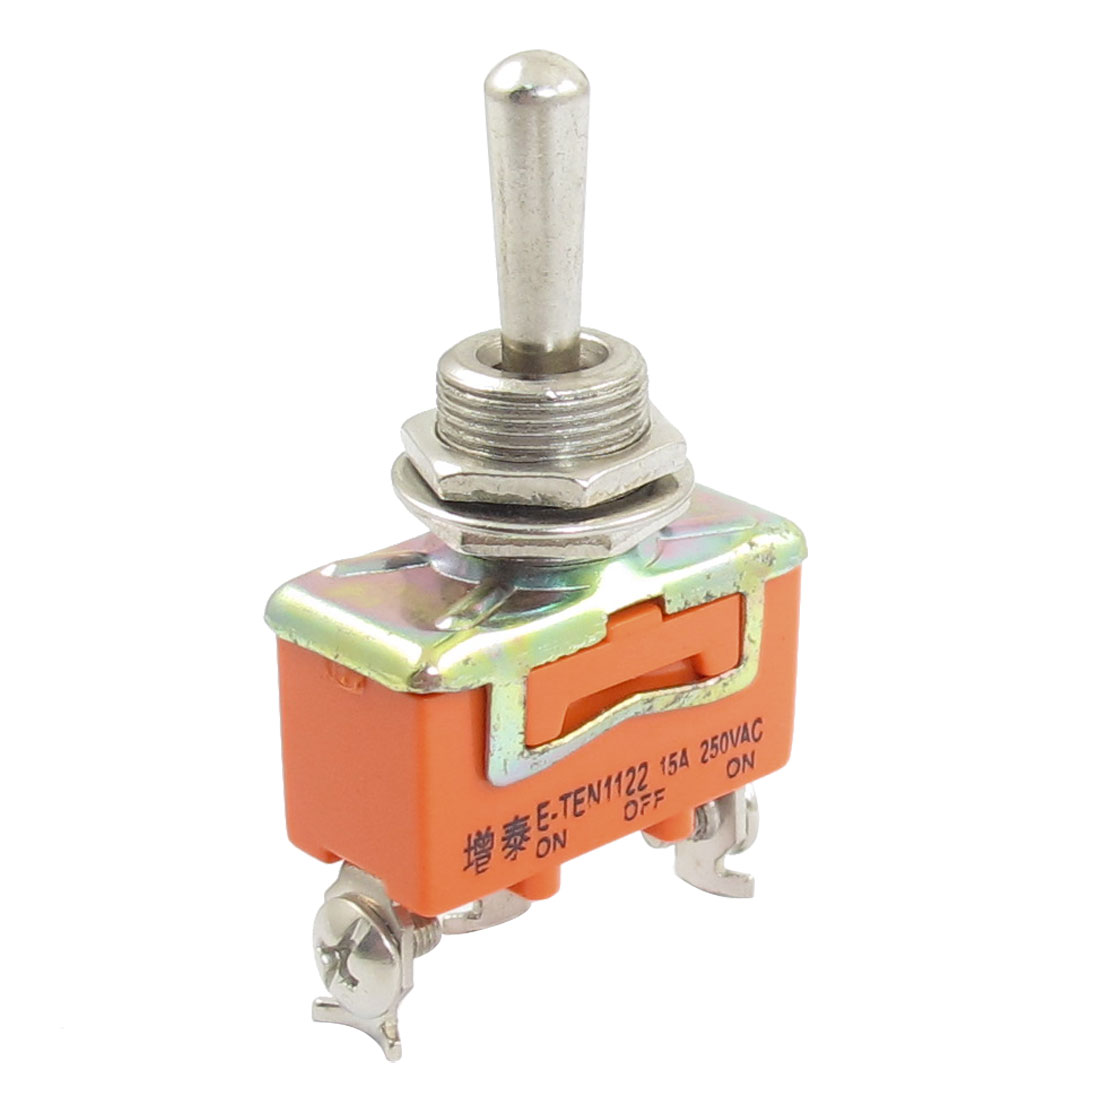 Orange 3-Position 3 Terminals SPDT Toggle Switch AC 250V 15A